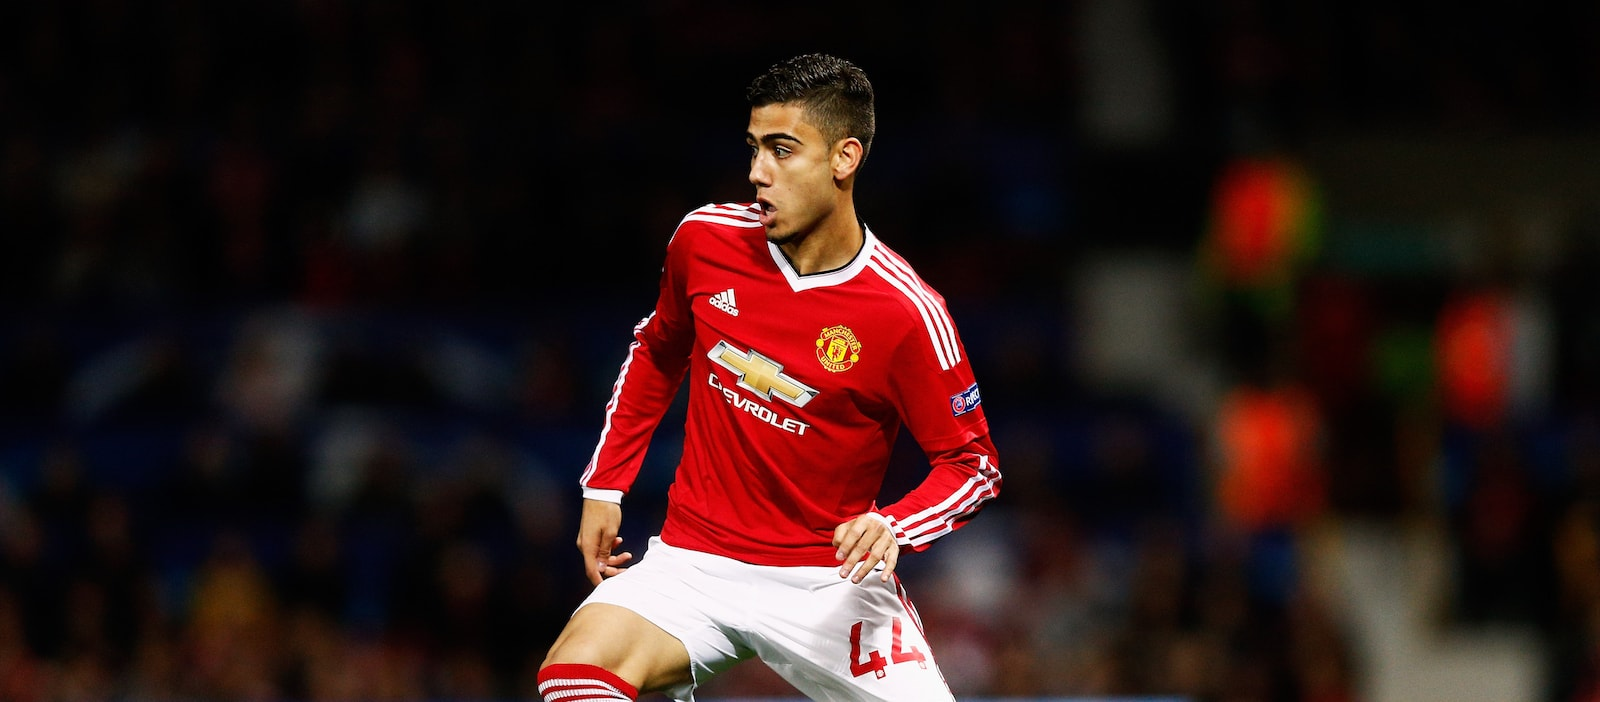 Videos: Pereira, Love and Varela goals vs Tottenham Hotspur U21s